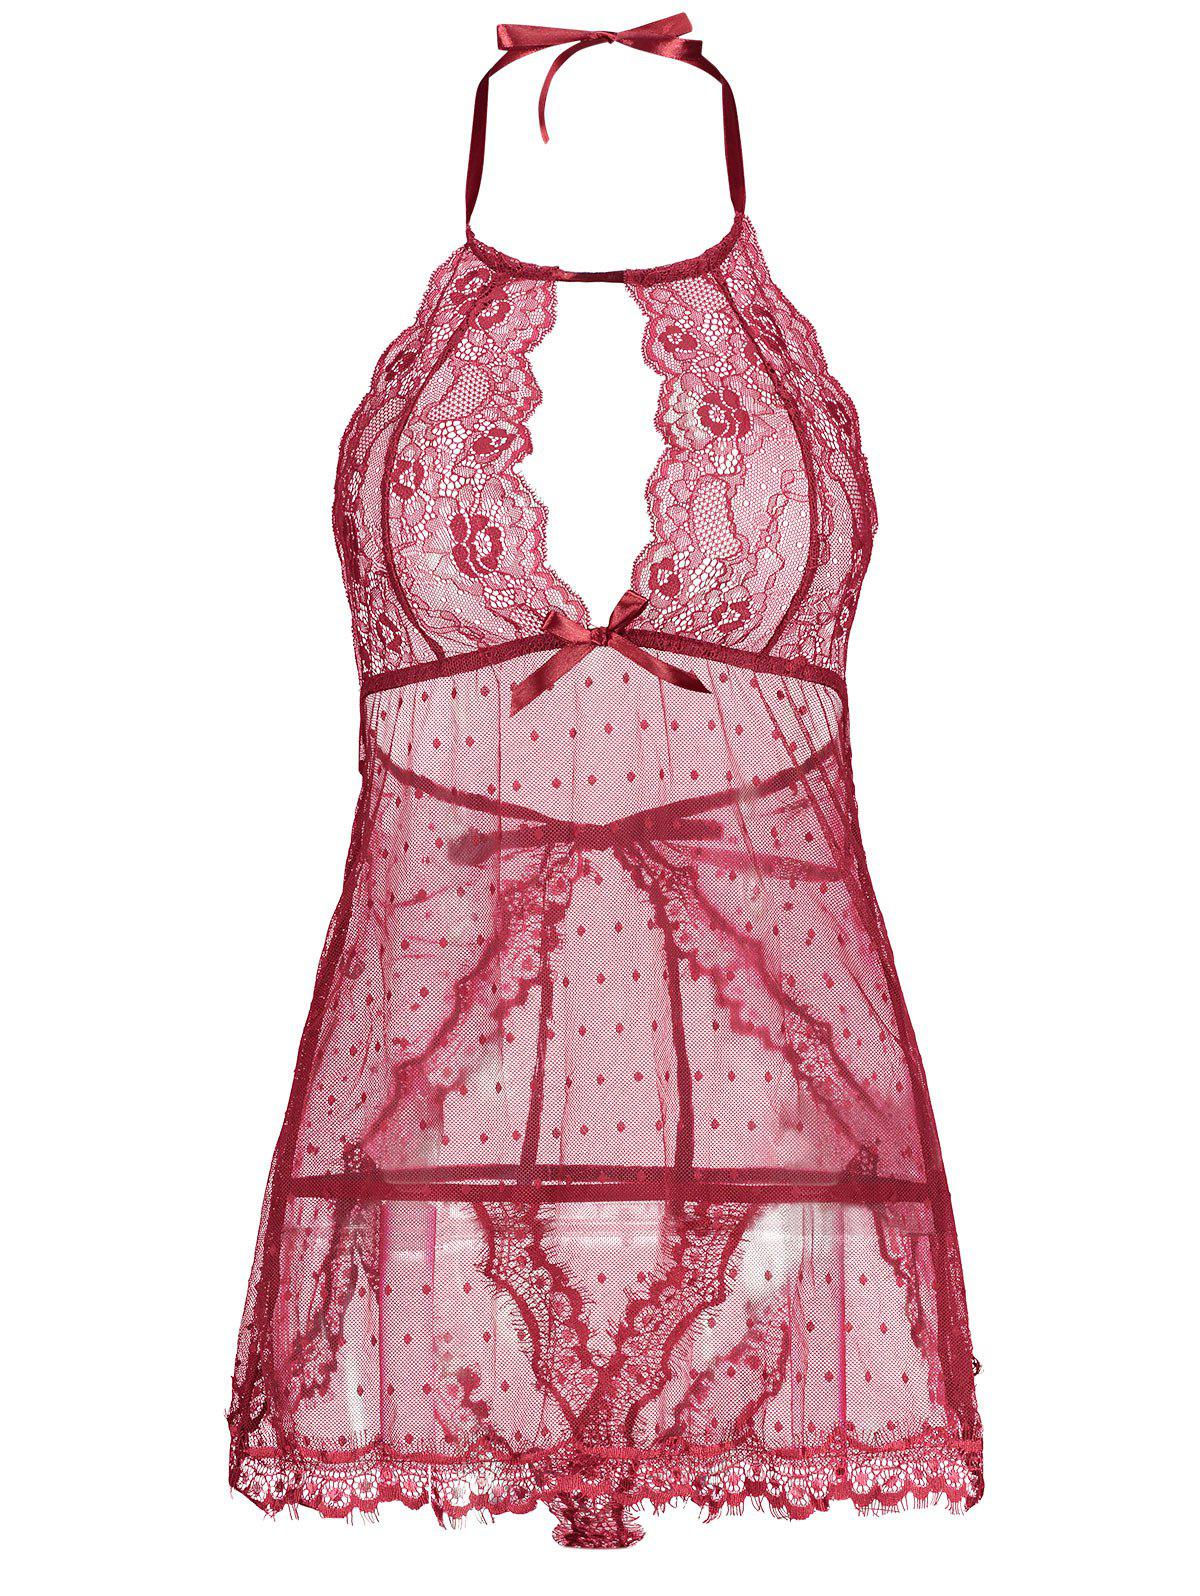 New Back Split Lace Sheer Lingerie Dress